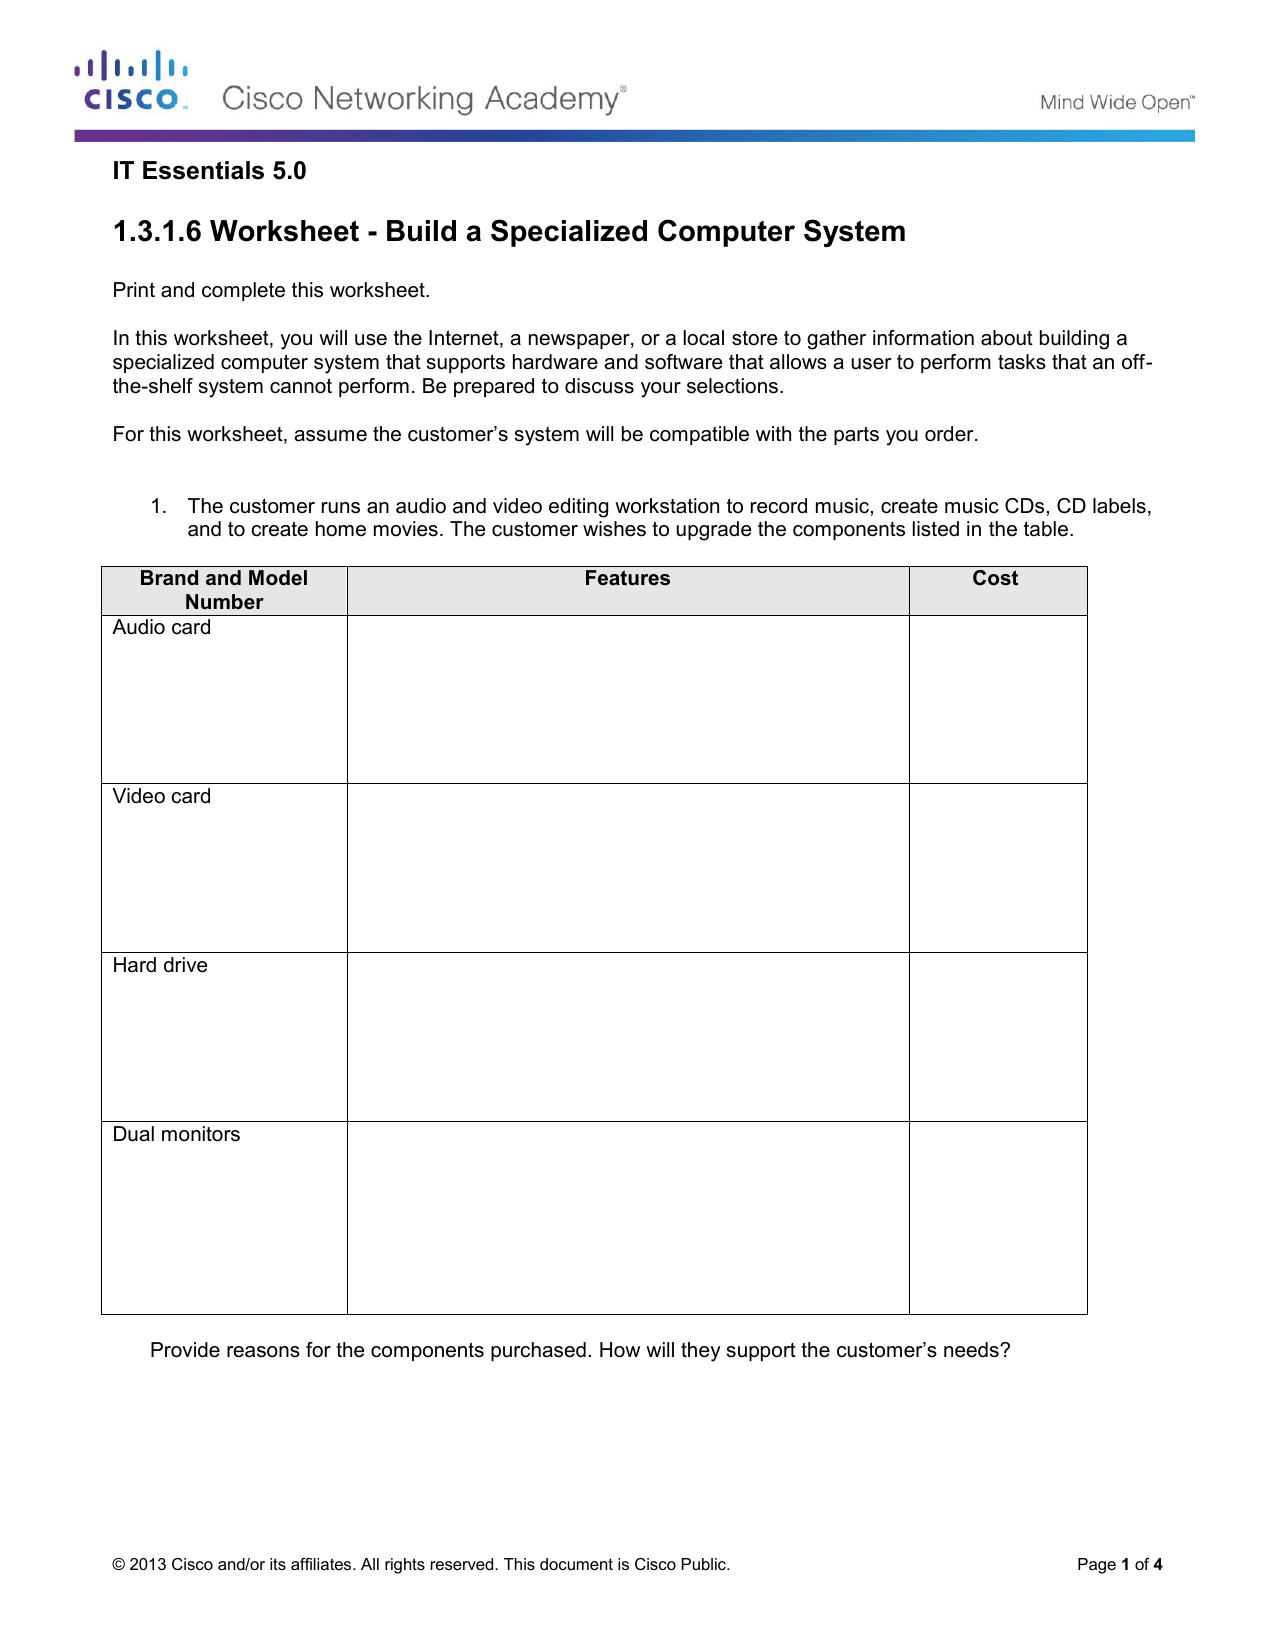 1 3 1 6 Worksheet